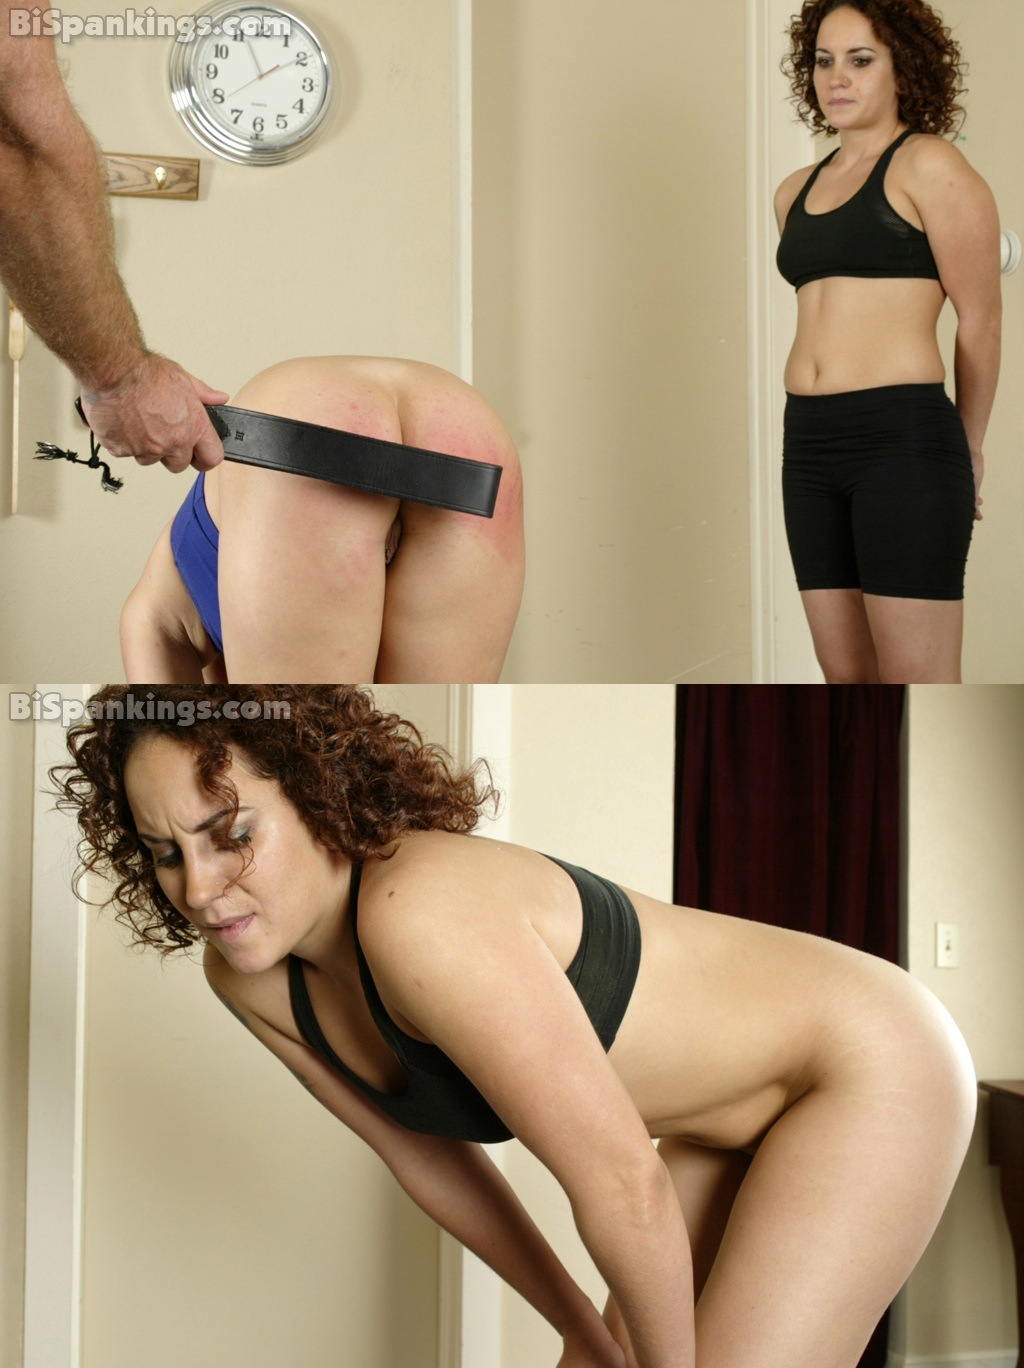 Bi Spanking – RM/SD – Physical Training With Coach